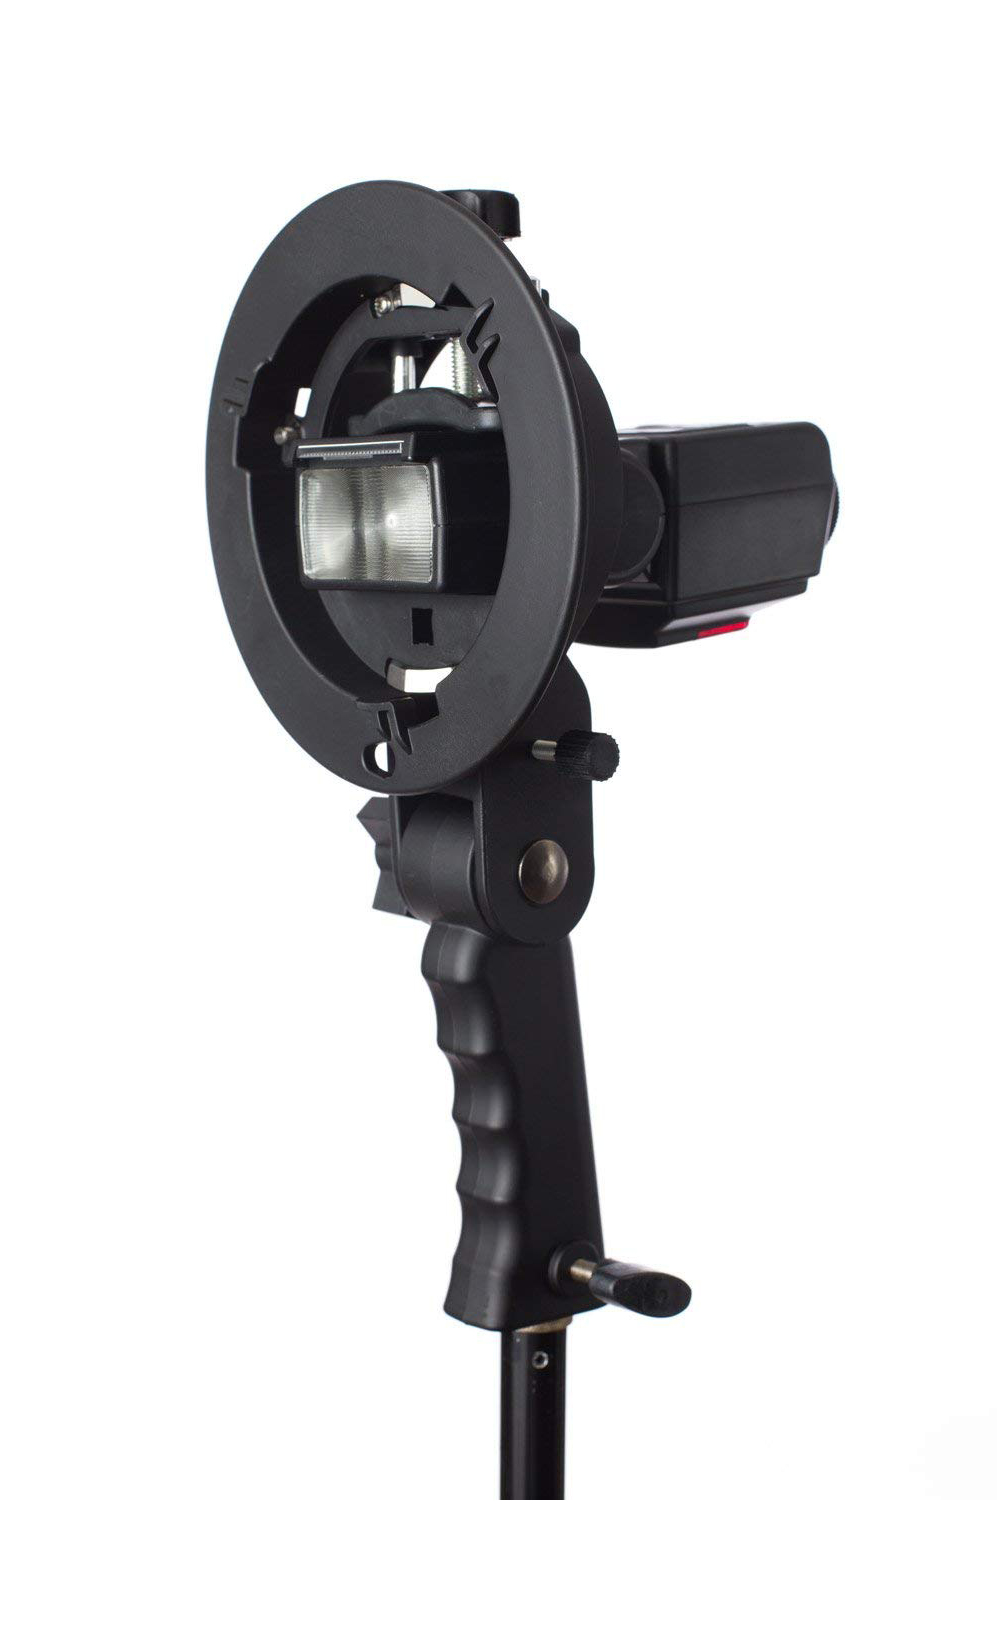 Handheld Grip S-Type Bracket Holder with Bowens Mount for Speedlite Flash Snoot Softbox Beauty Dish Photography Accessories (4)